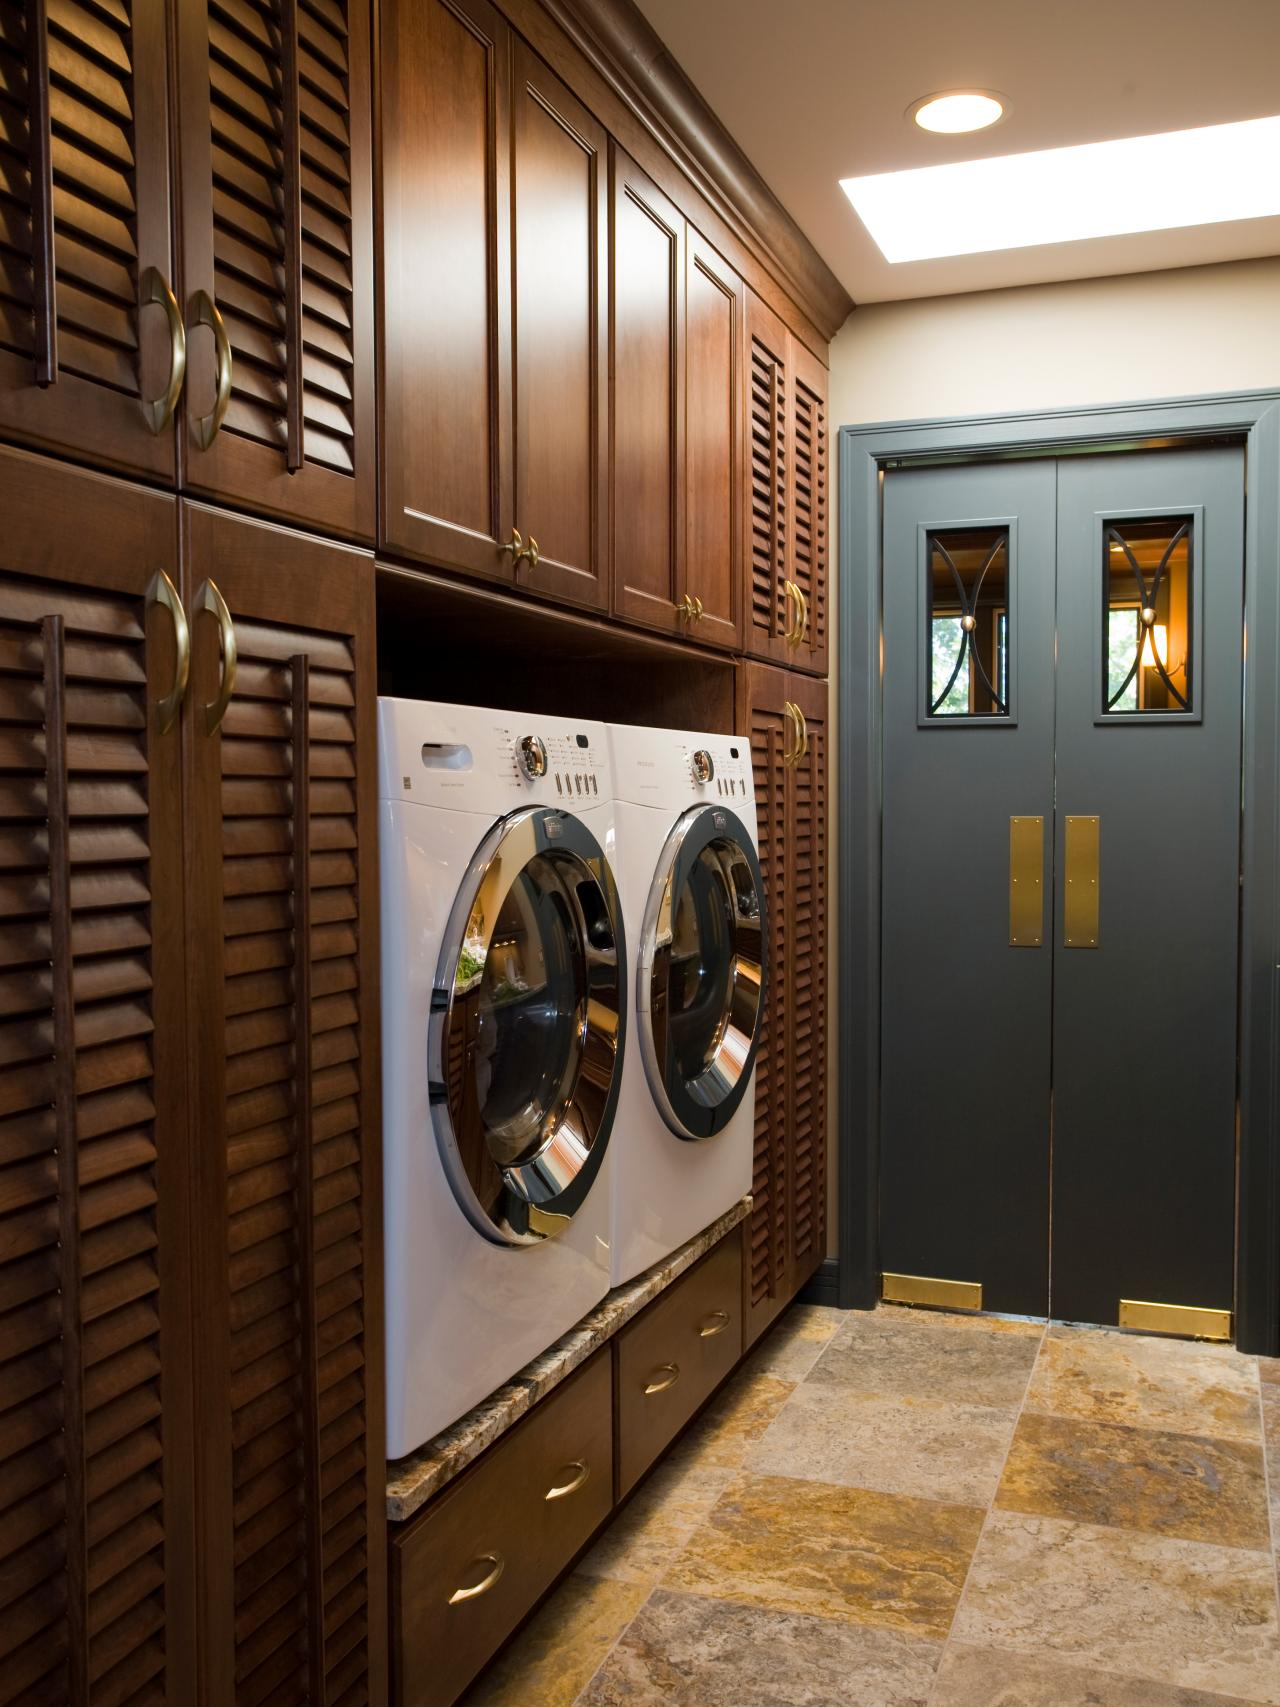 15 ways to organize your laundry room solutioingenieria Image collections